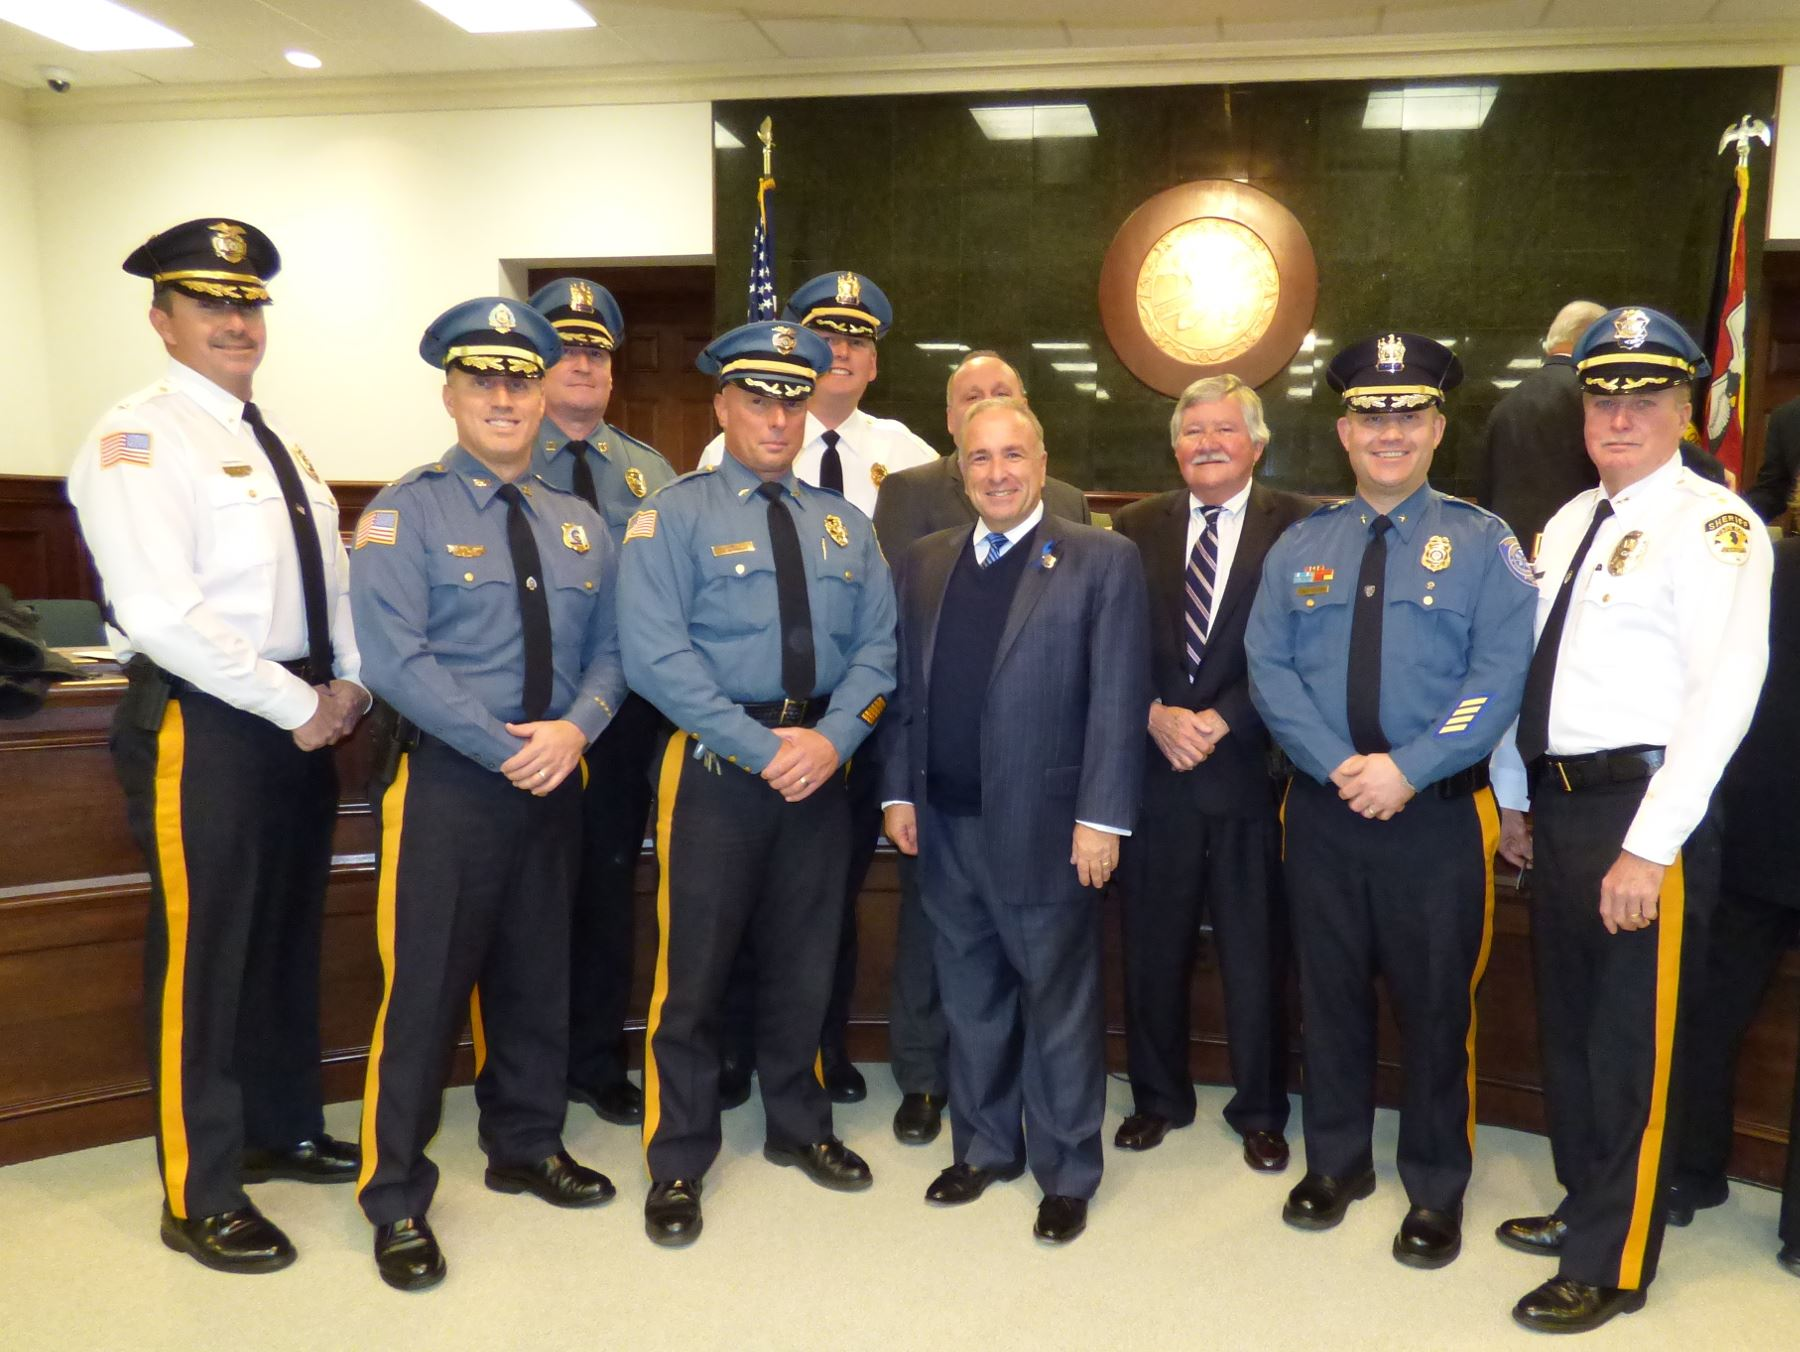 Cape May County Public Safety Officials